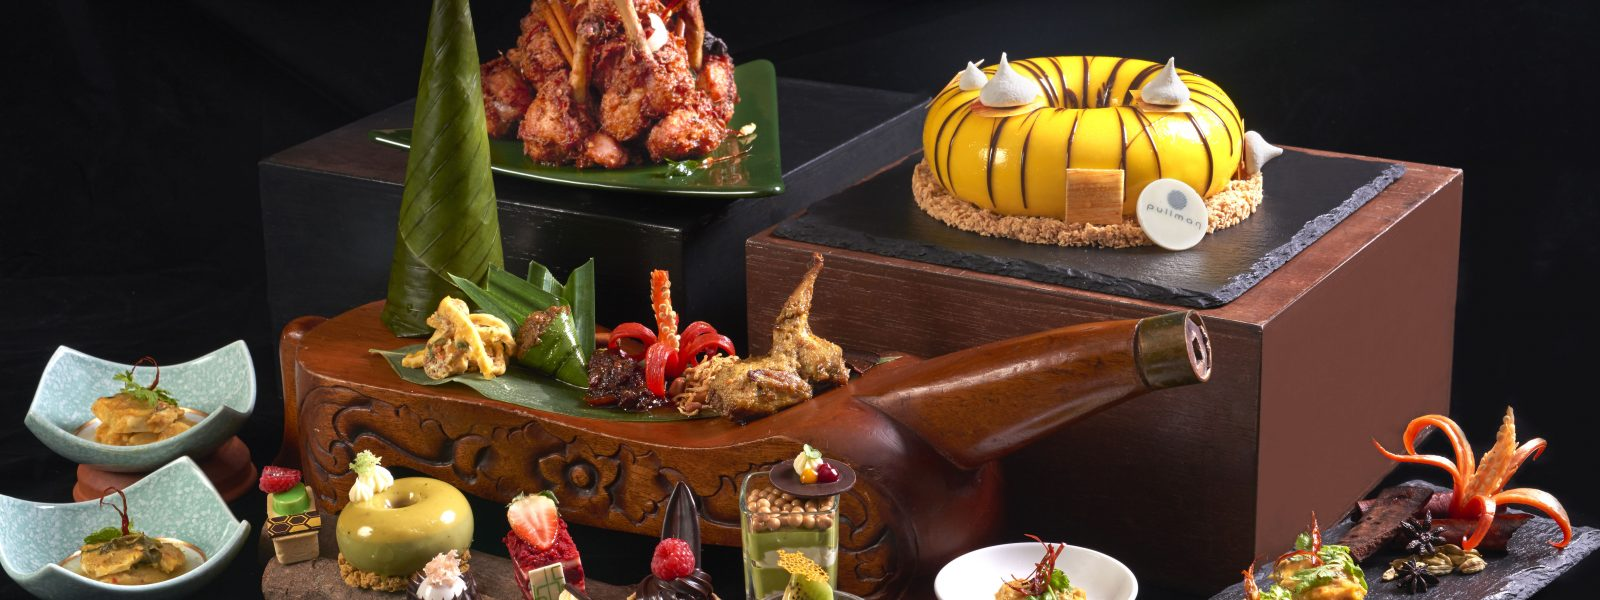 Buffet Spread for this Ramadhan